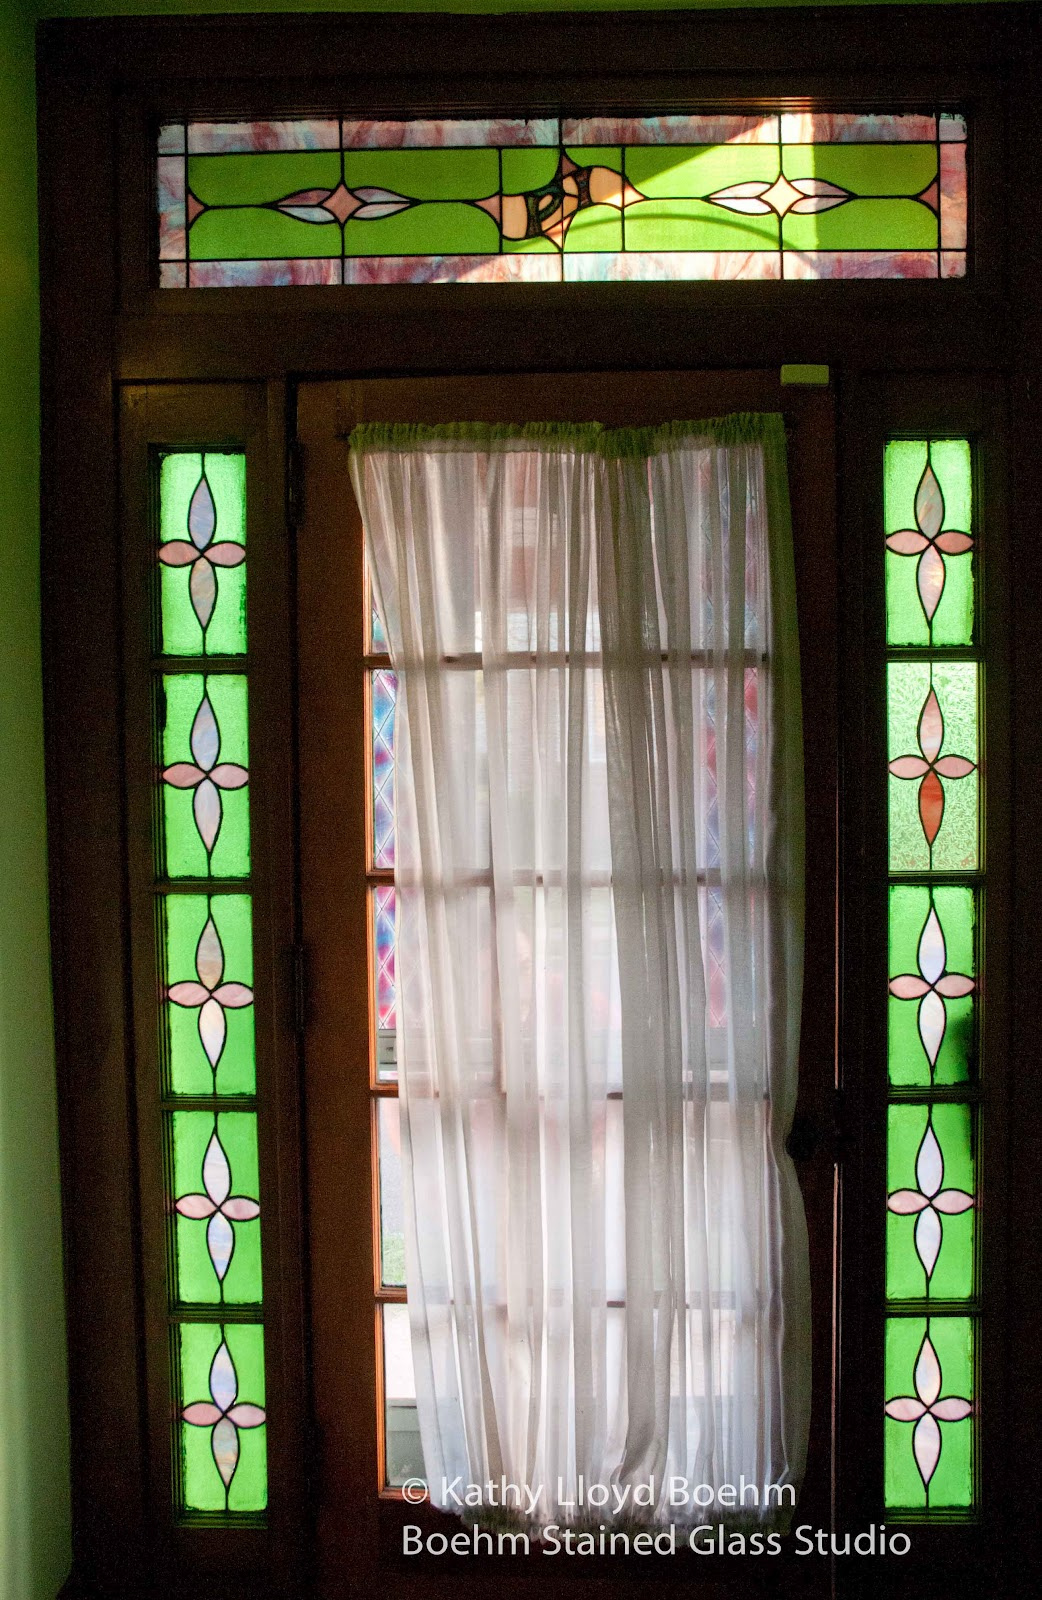 1600 #3CA526 Boehm Stained Glass Blog: Stained Glass Front Door Panel  wallpaper Stained Glass Front Doors 40151042